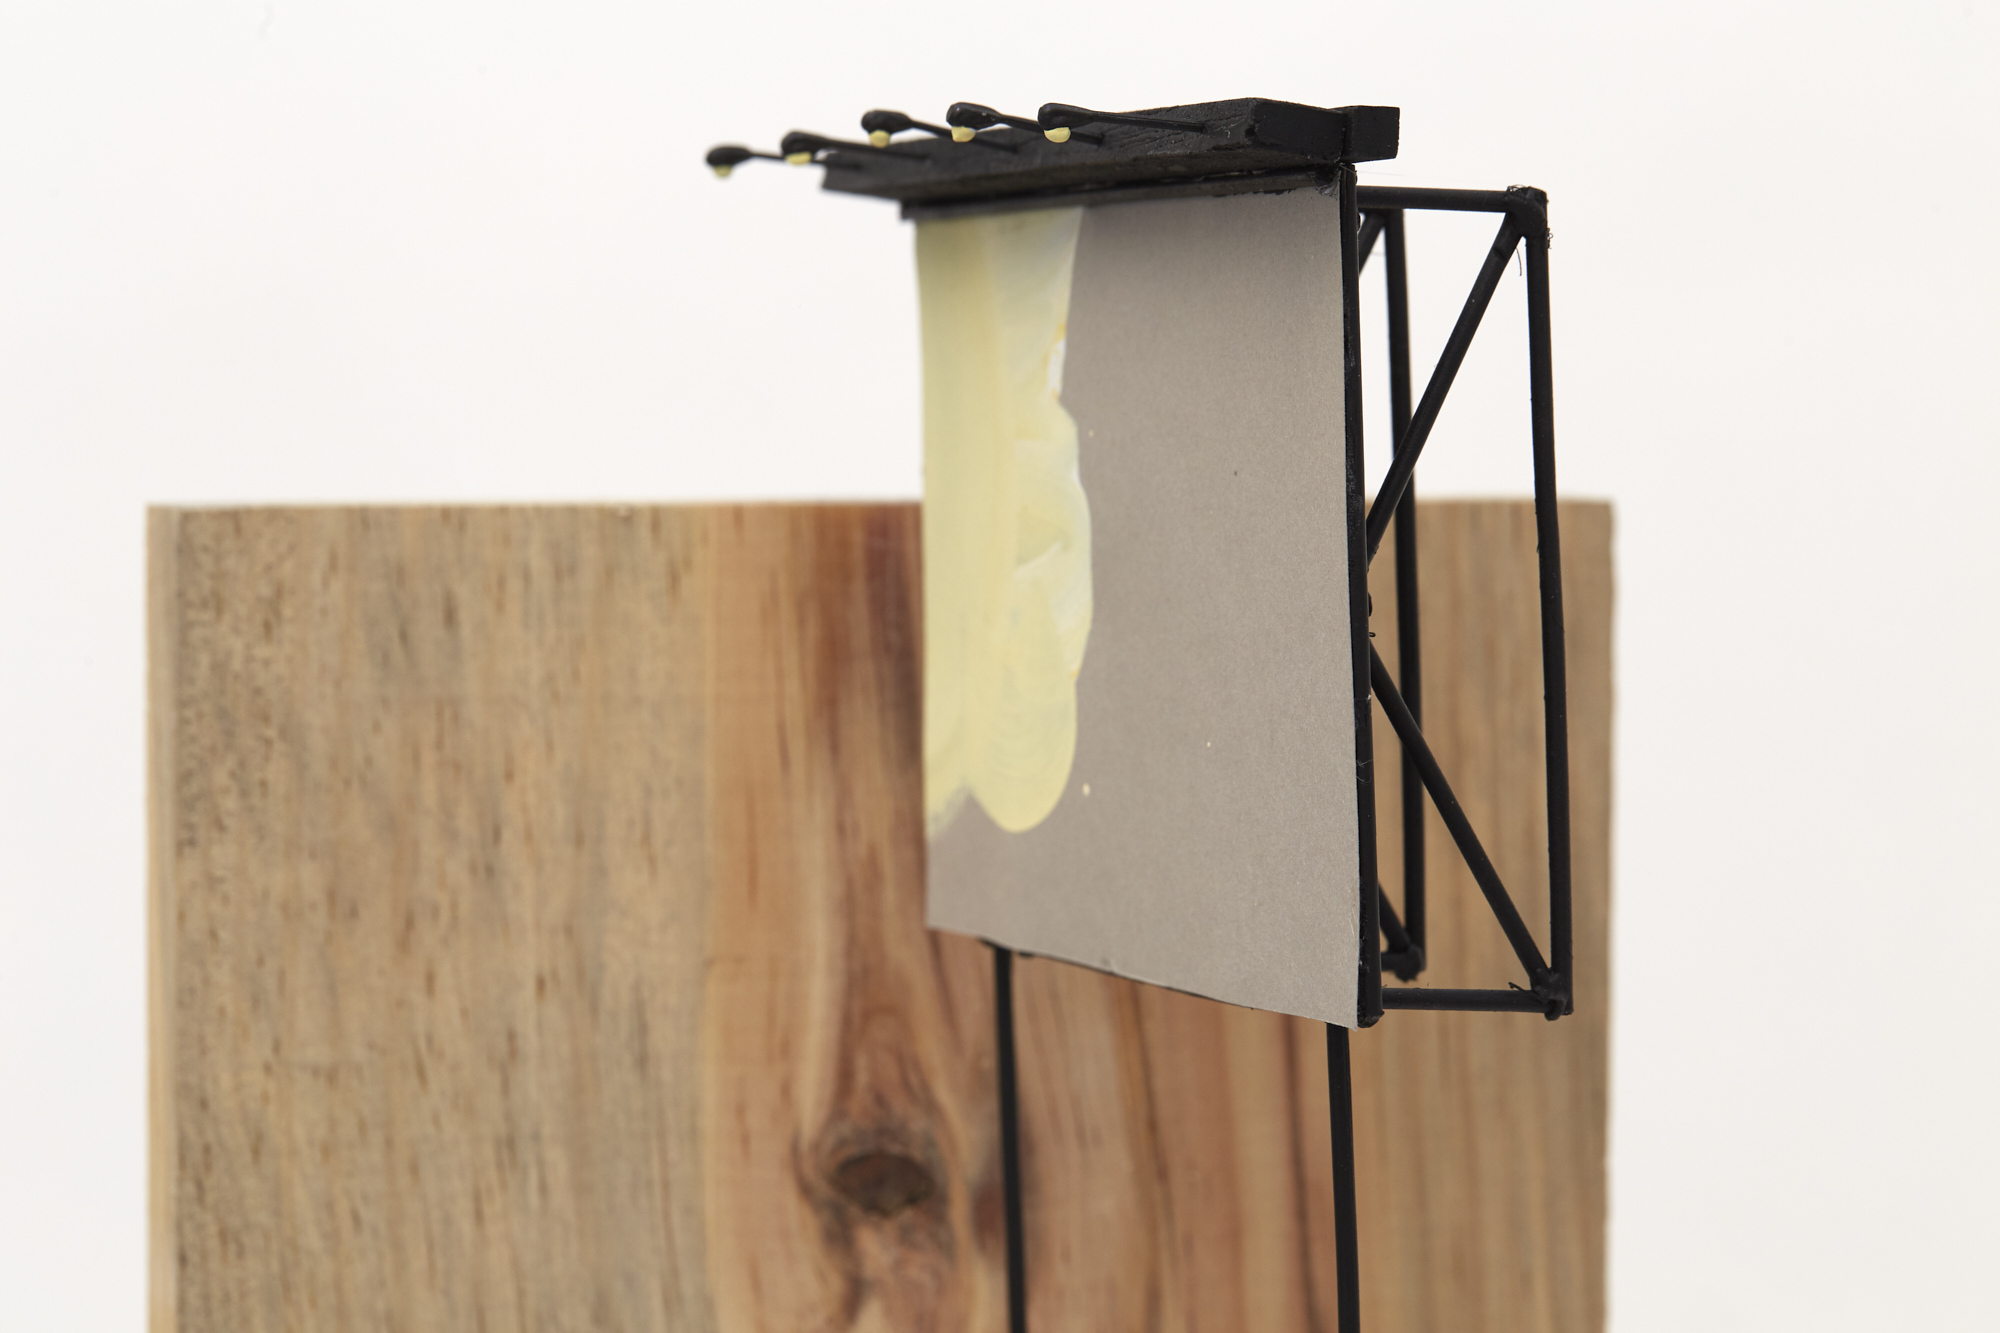 Charlie Godet Thomas, Rooftop Poem (Reap) (detail), 2020. Wood, cut section of paper palette, wooden dowels, plastic, screws, glue, acrylic paint. 124 x 24 x 26 cm.